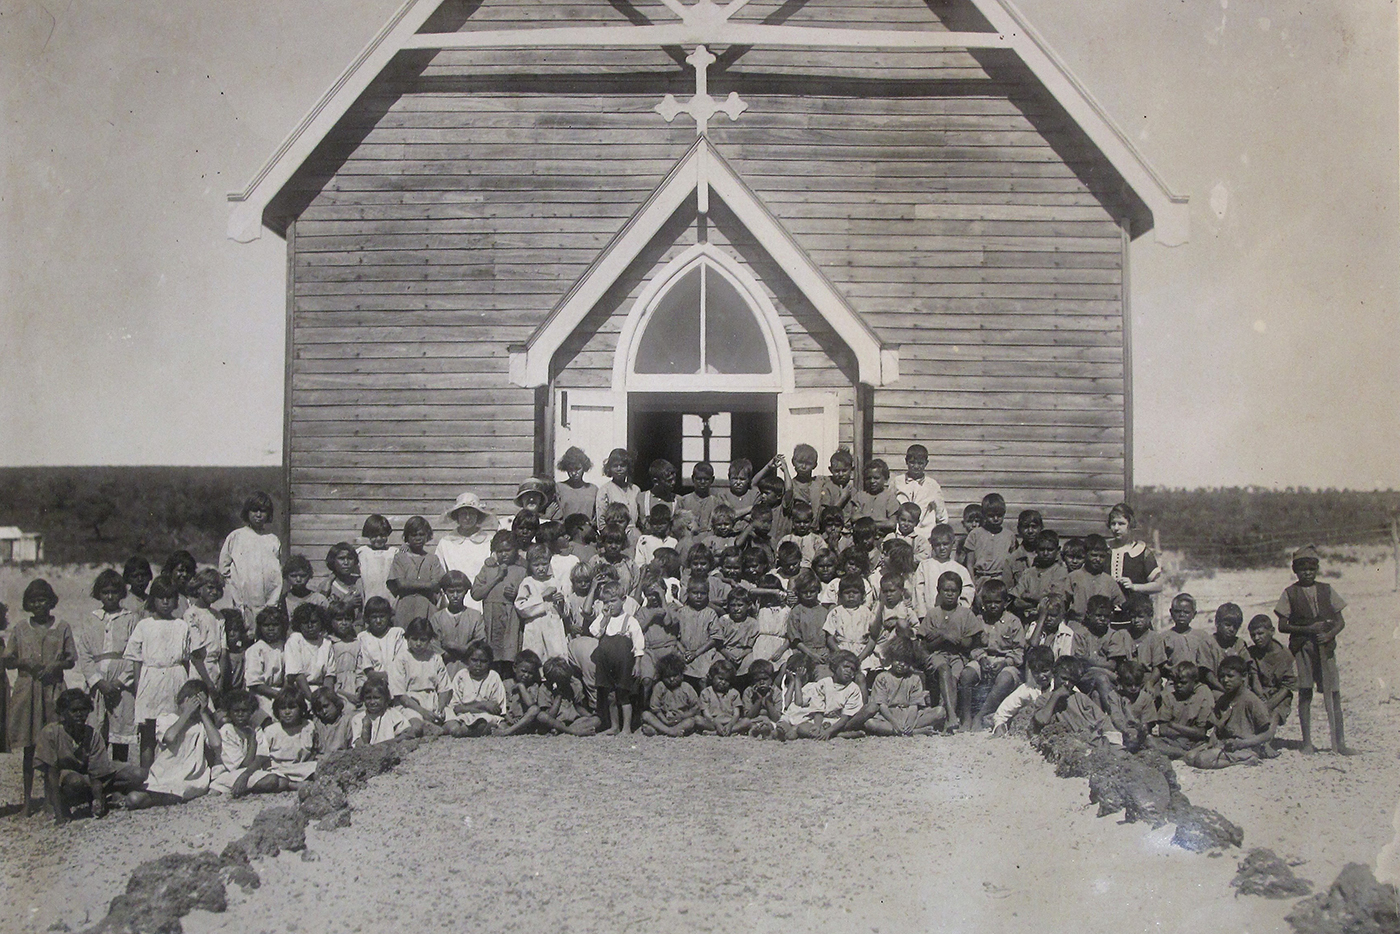 Aboriginal children at Moore River Settlement Church, courtesy of the AHWA collection.